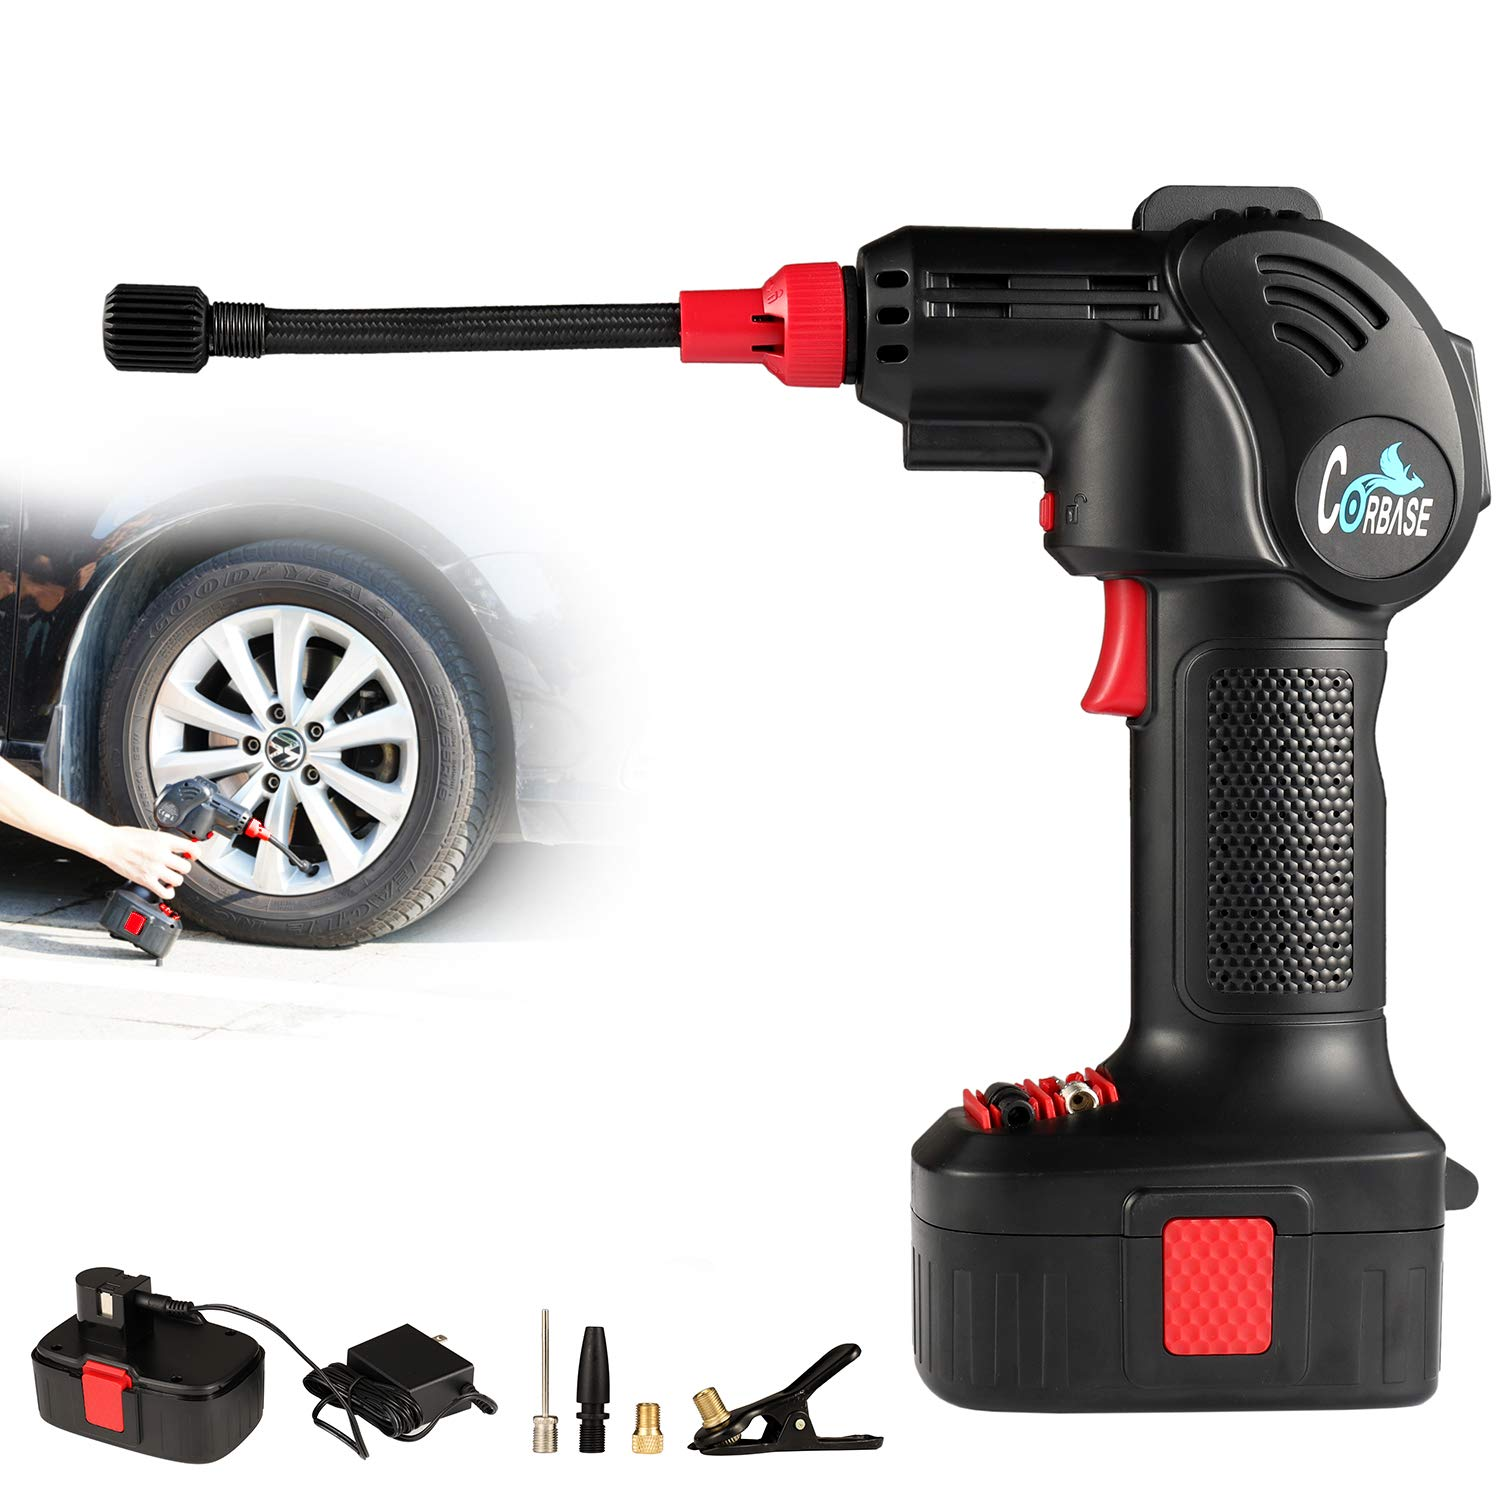 Portable Hand Held Air Compressor Electric Cordless Tire Inflator Pump with Digital LCD Rechargeable Li-ion for Car Bike Bicycle and Motocycle 12V 125PSI (Red) Corbase